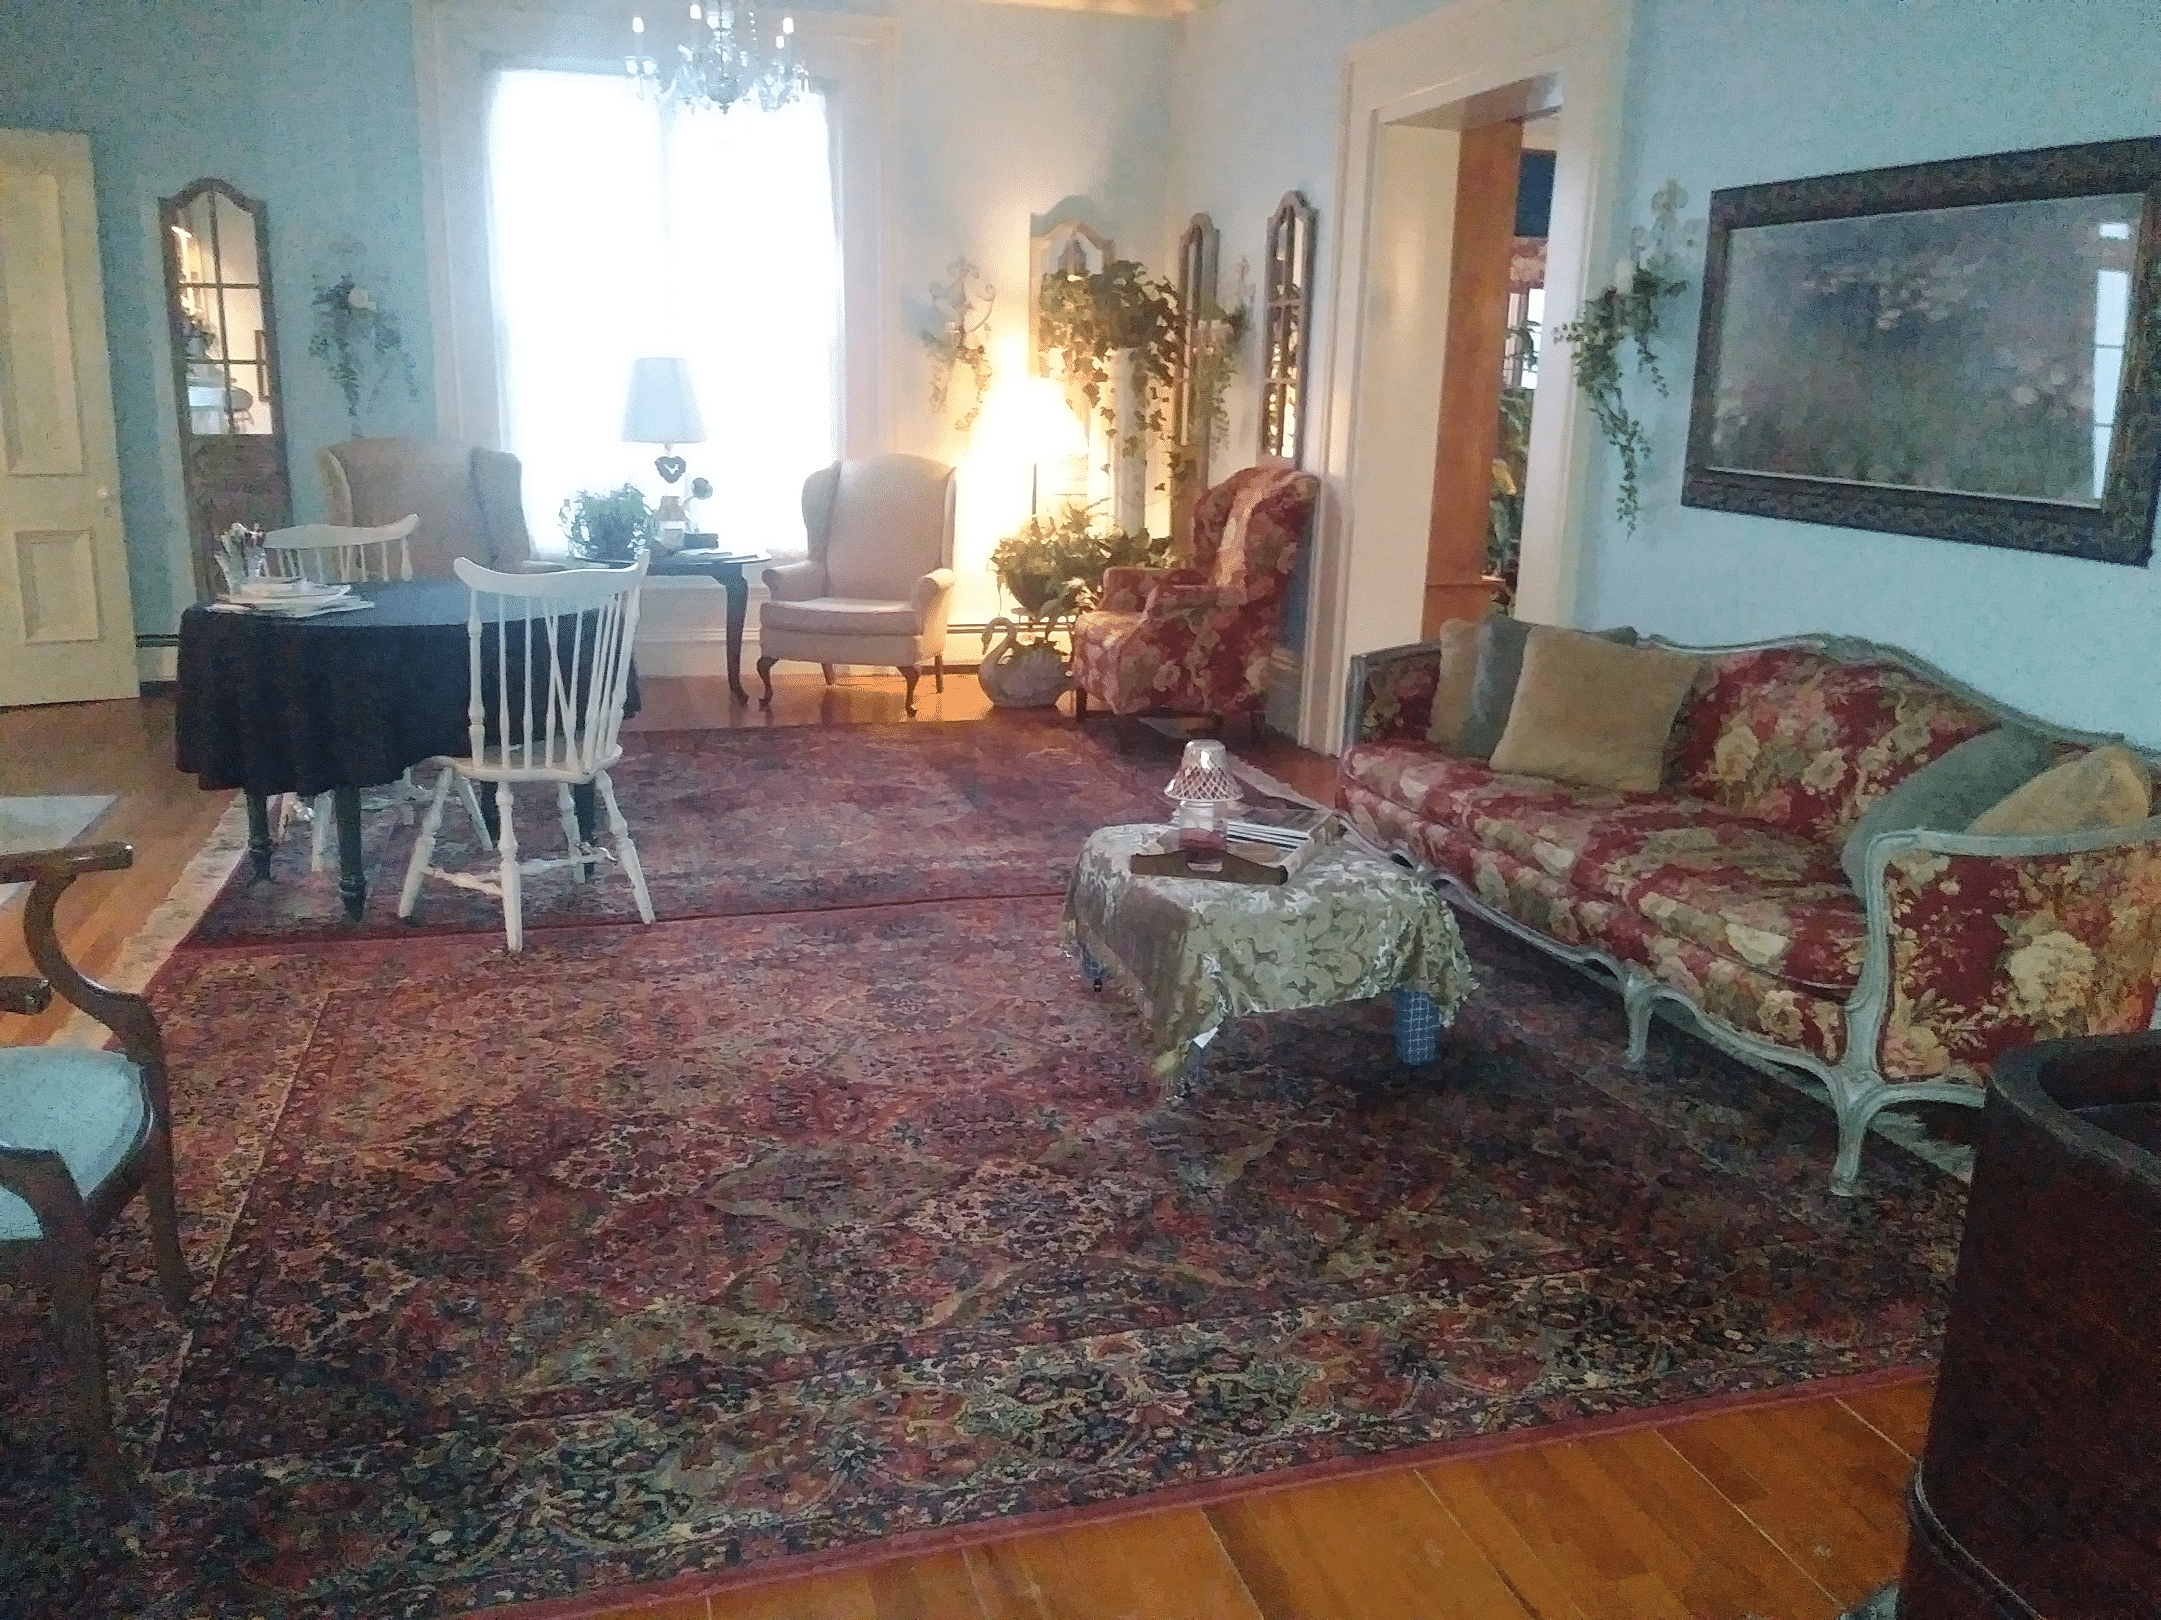 Carpeting comparison. Parlor looking east 2019